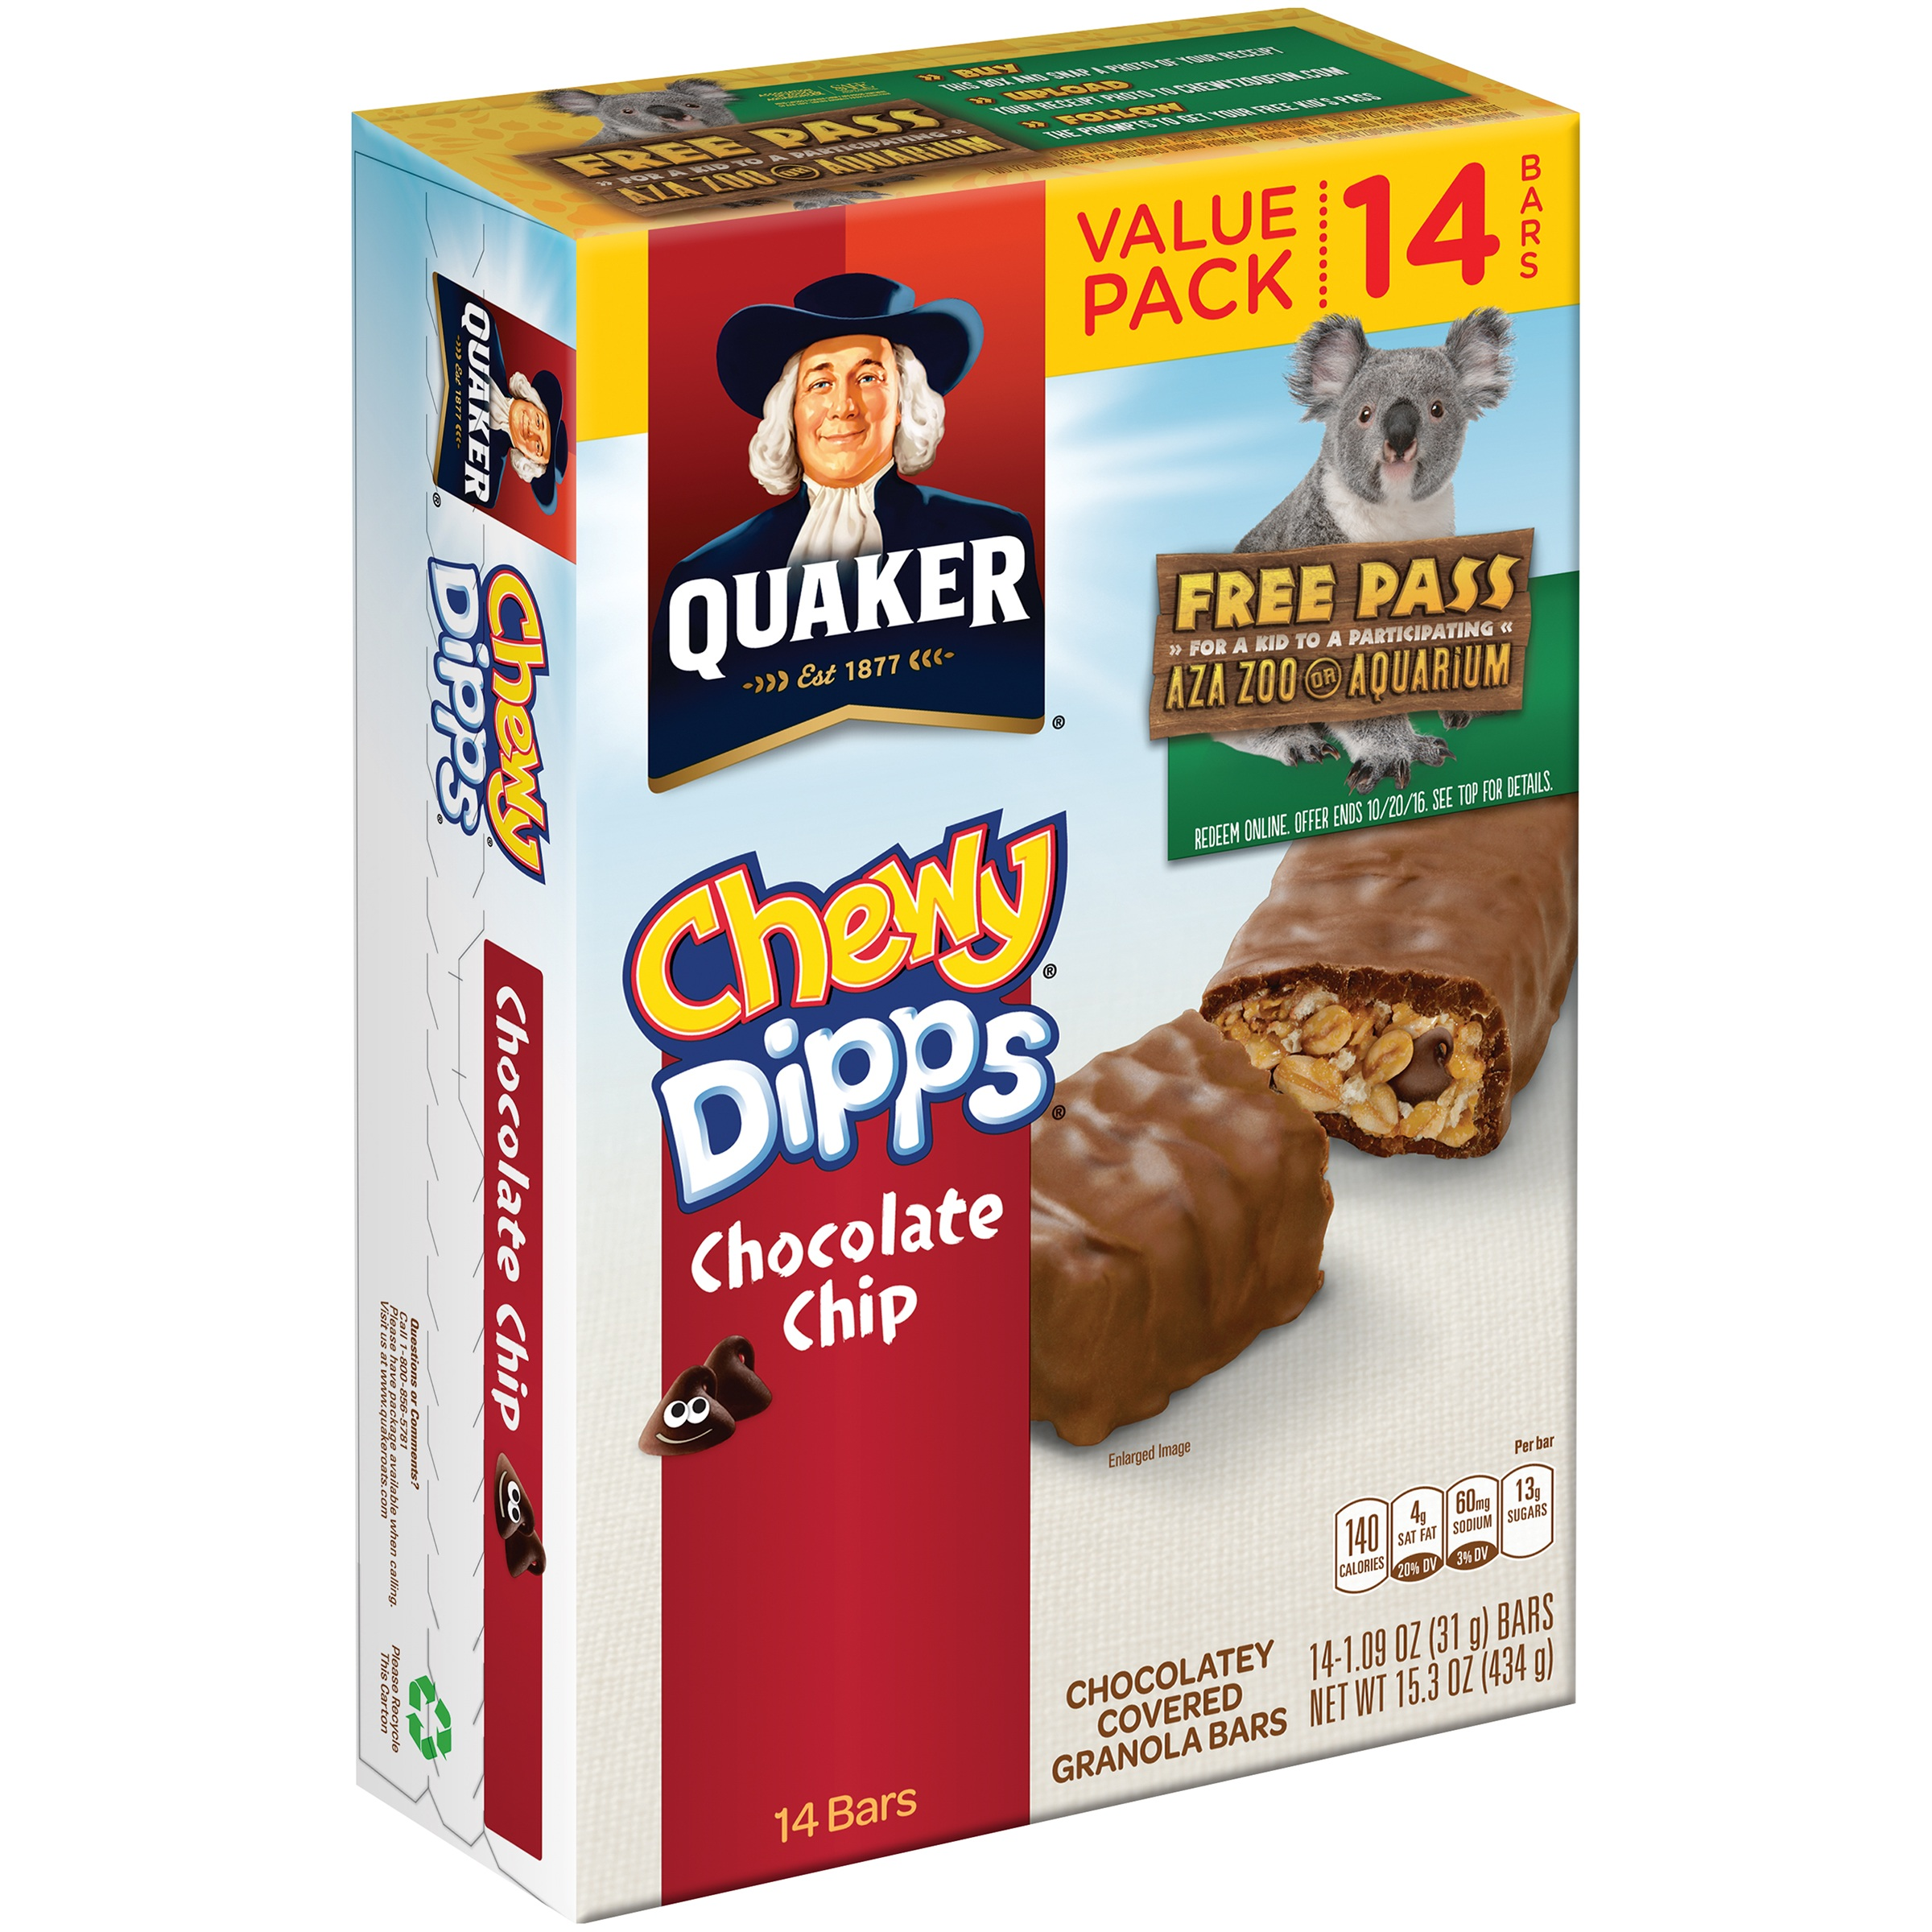 030000450529 UPC - Quaker: Chewy Dipps Chocolate Chip ... Quaker Chewy Granola Bars Barcode